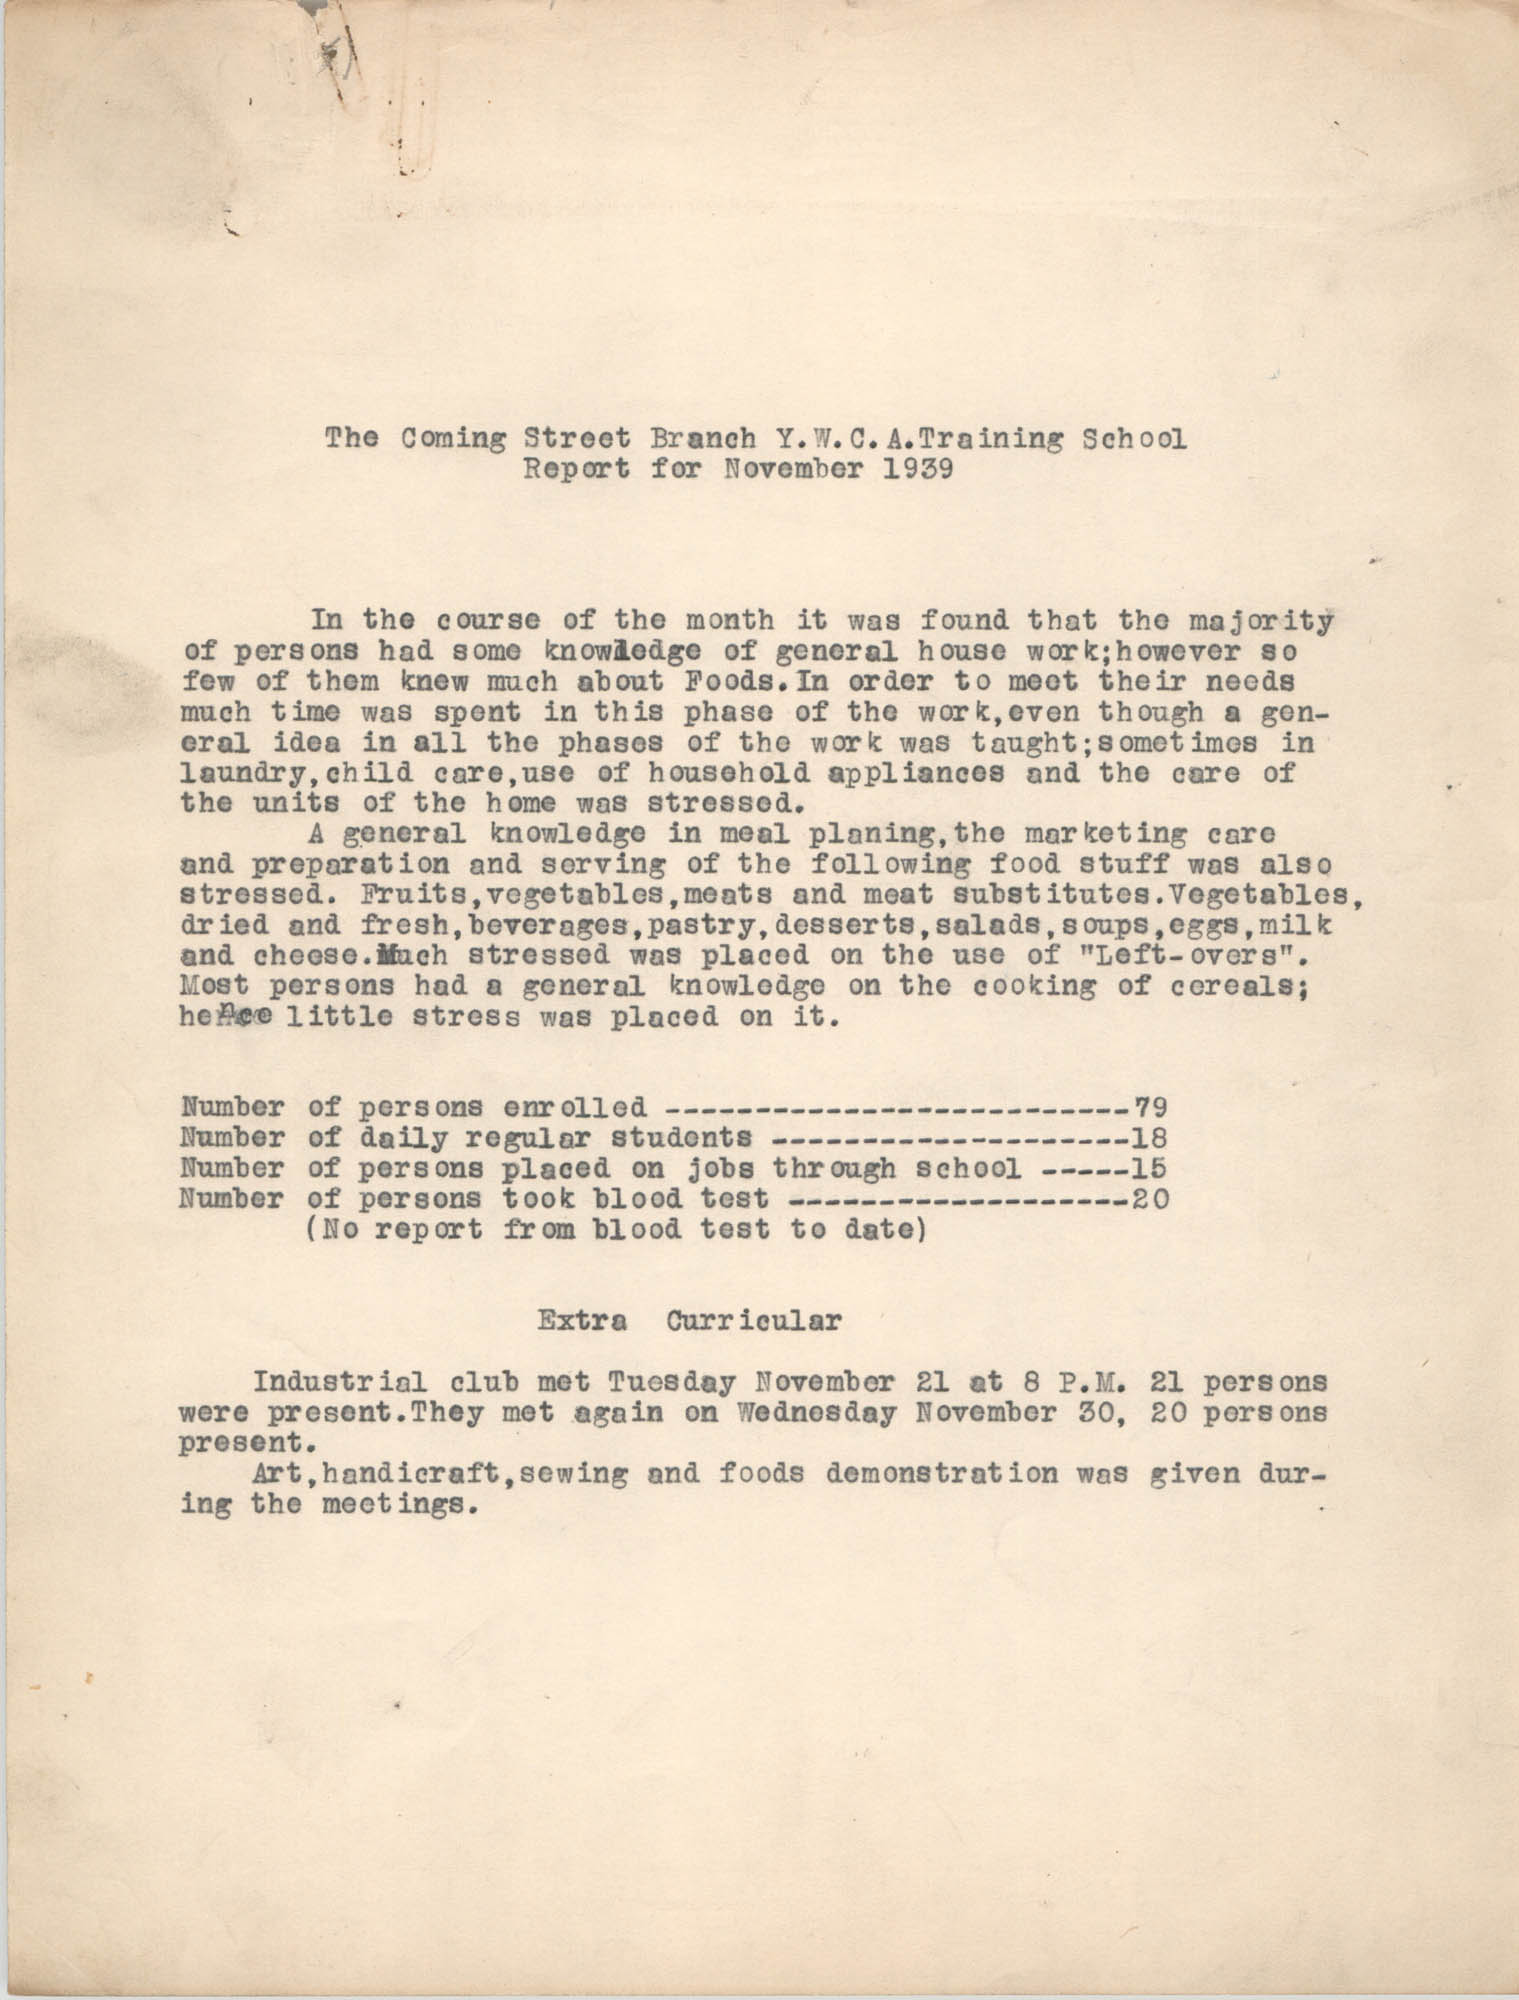 Coming Street Y.W.C.A., Training School Report for November 1939